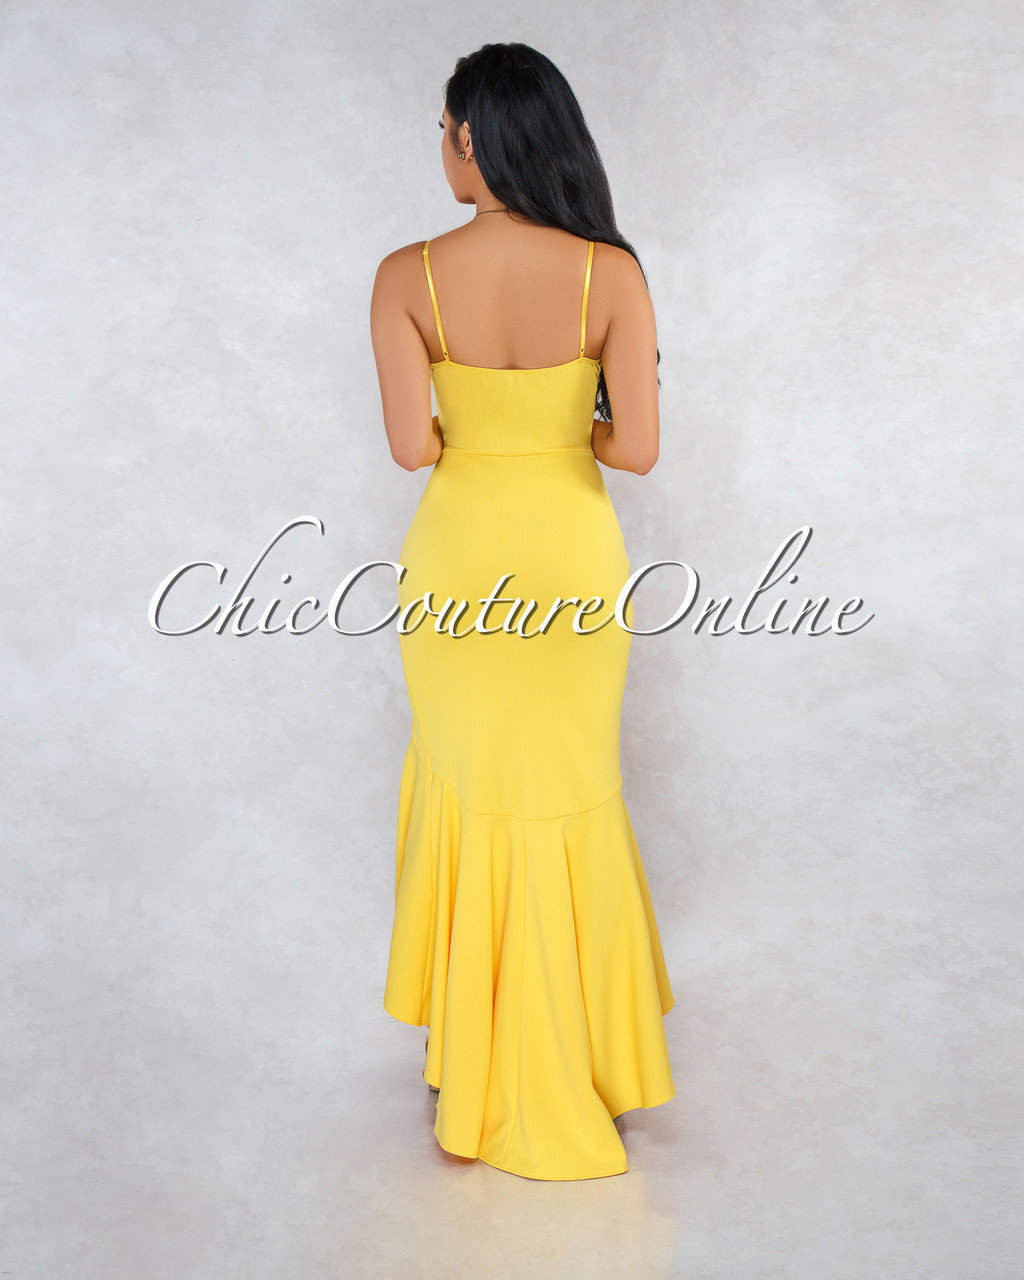 e29e56154d8 Constance Yellow Ruffle Accent High-Low Maxi Dress. Price   50.00. Image 1.  Larger   More Photos